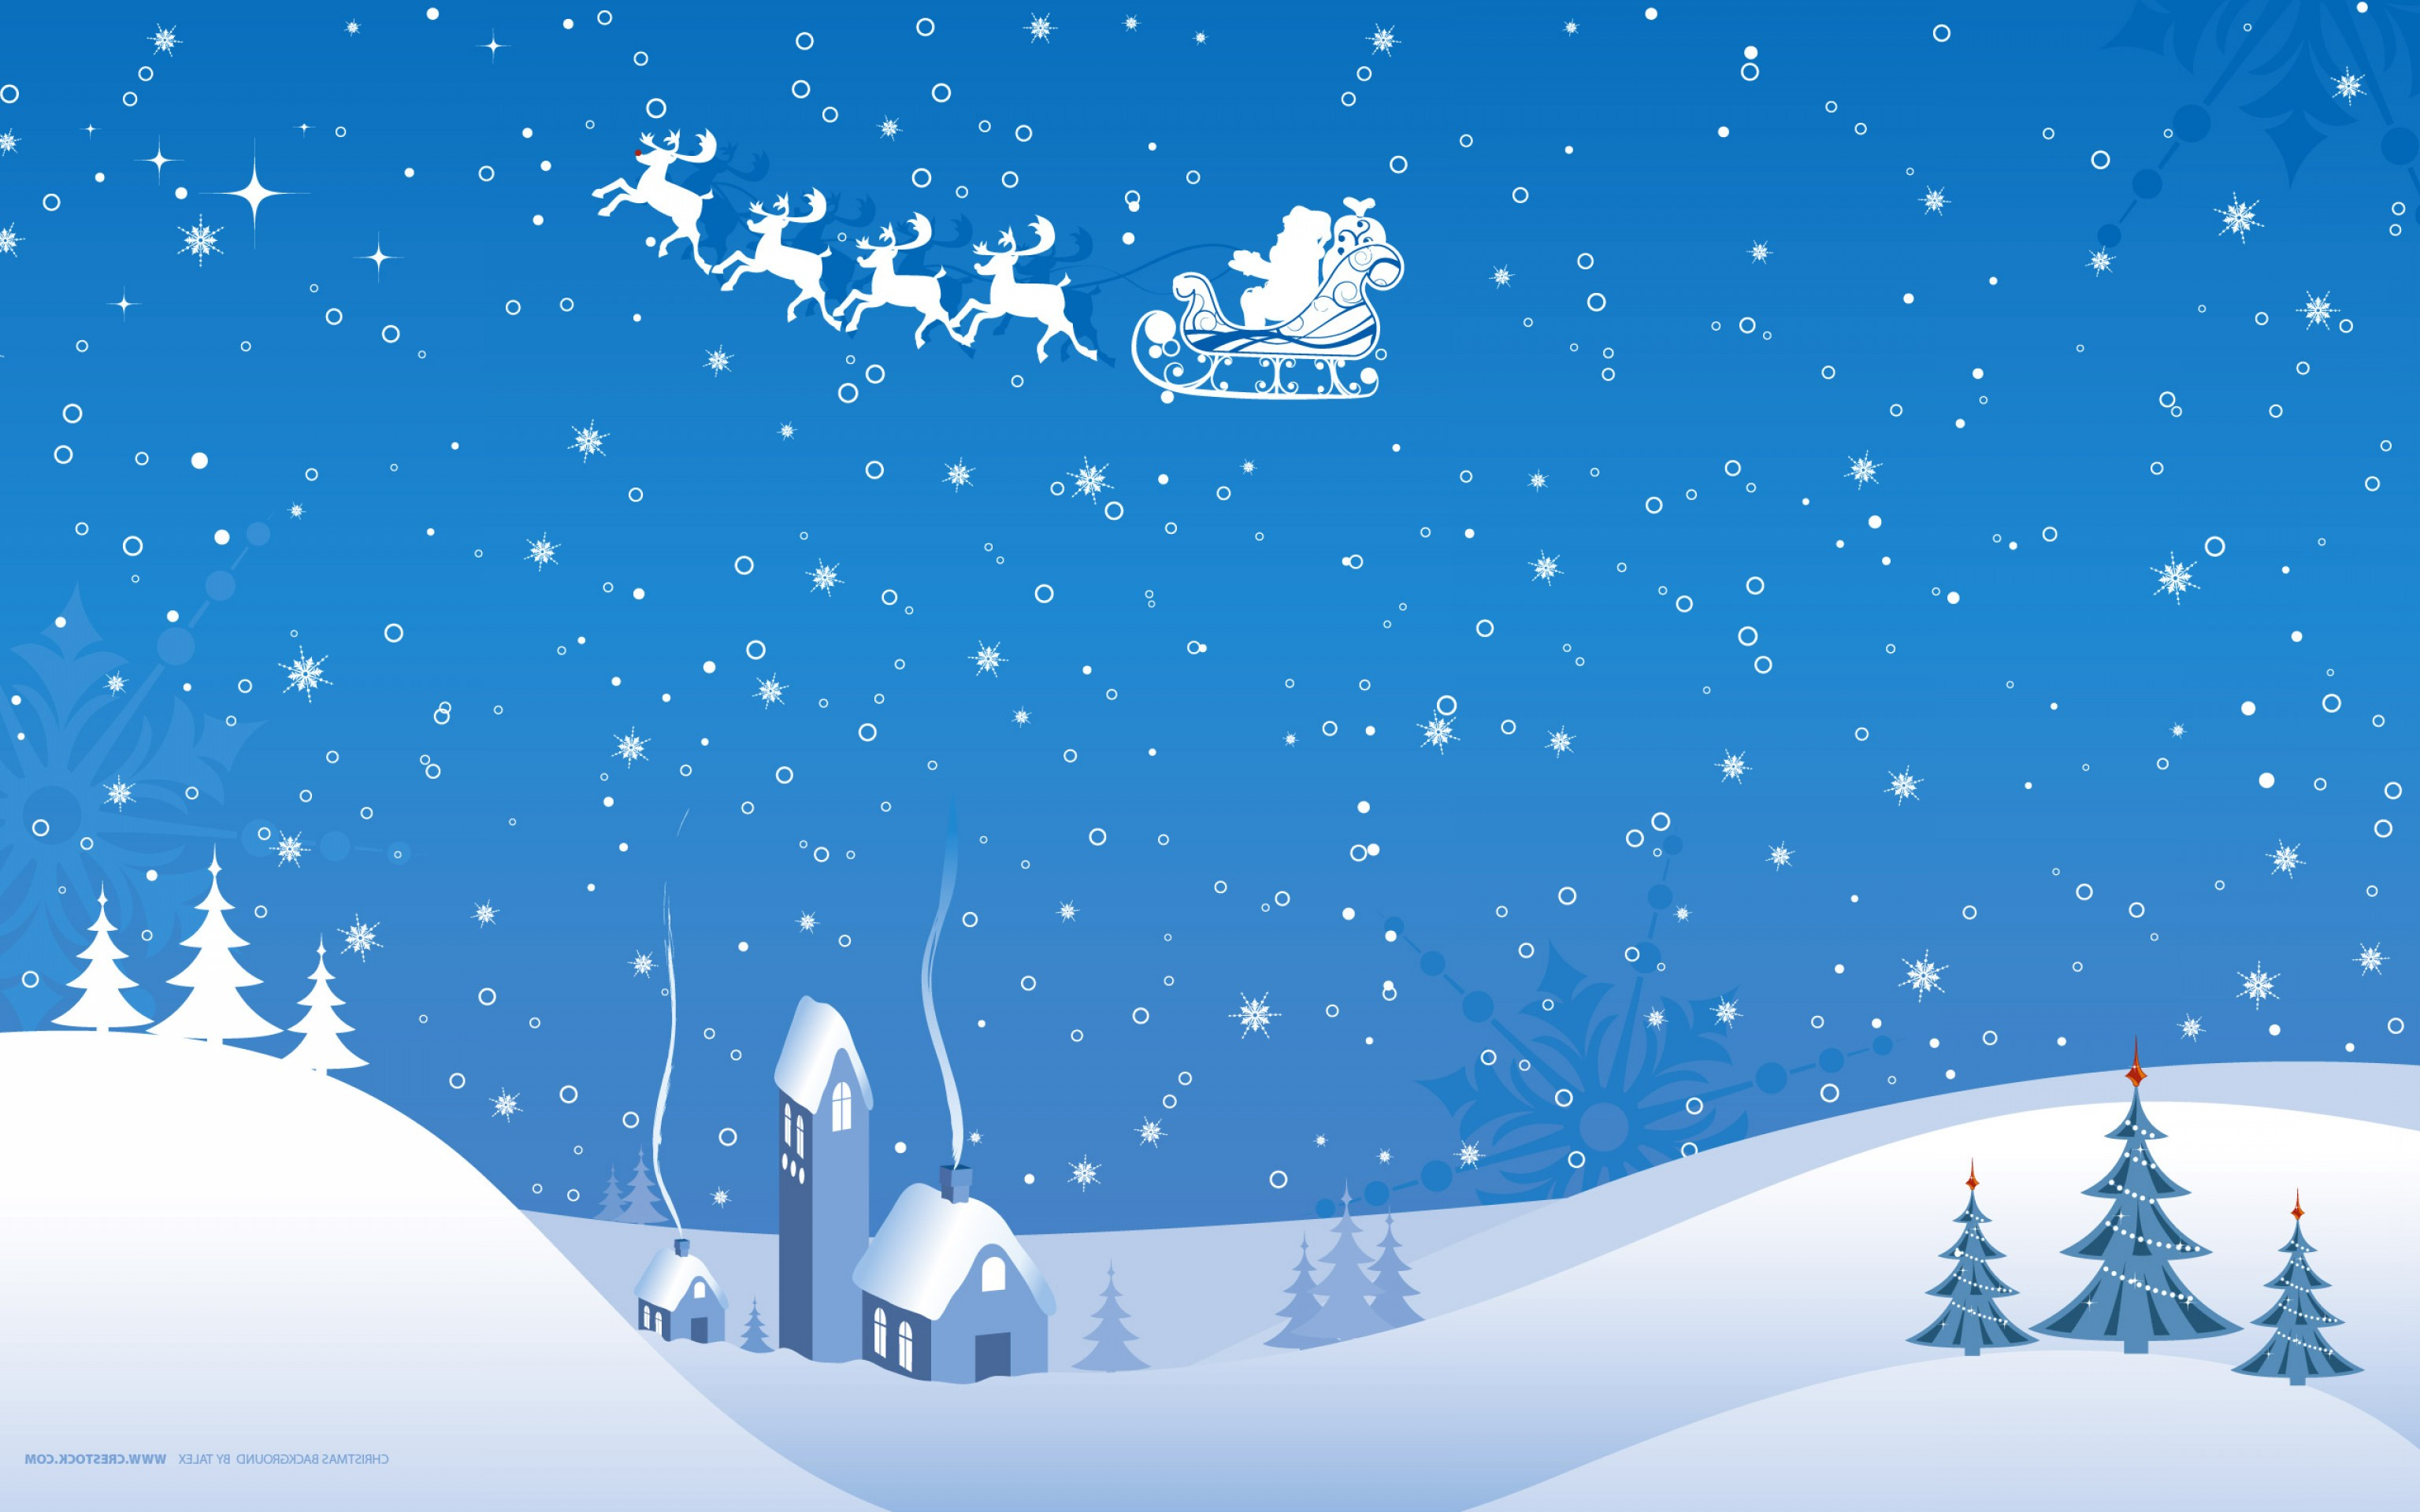 Free Winter Vector: Christmas Blue Night In Winter Time